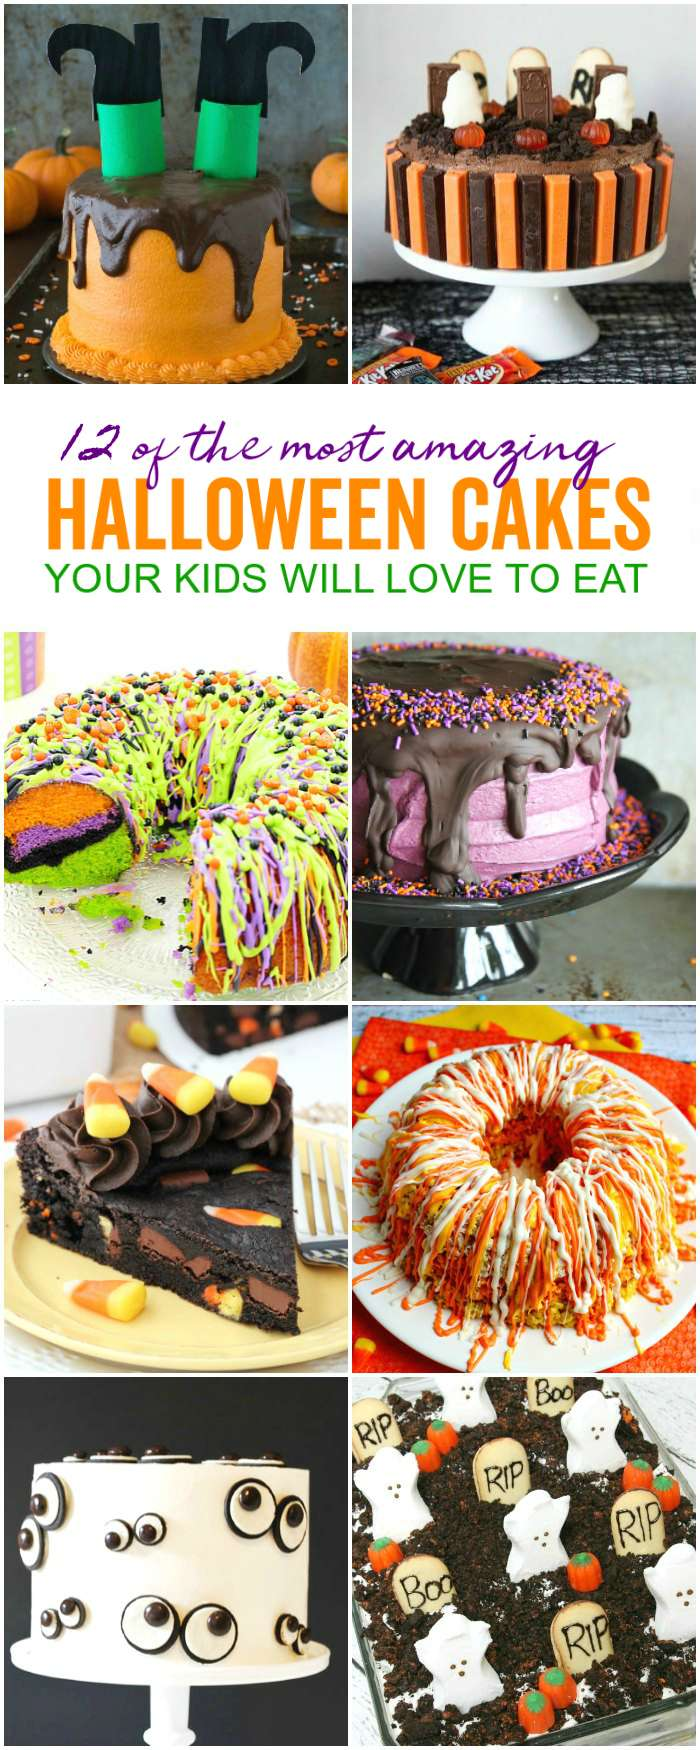 Halloween Cakes, Easy Halloween Cakes, Halloween Cakes for Kids, and Halloween Cake Ideas for the cutest Halloween Party Cakes!